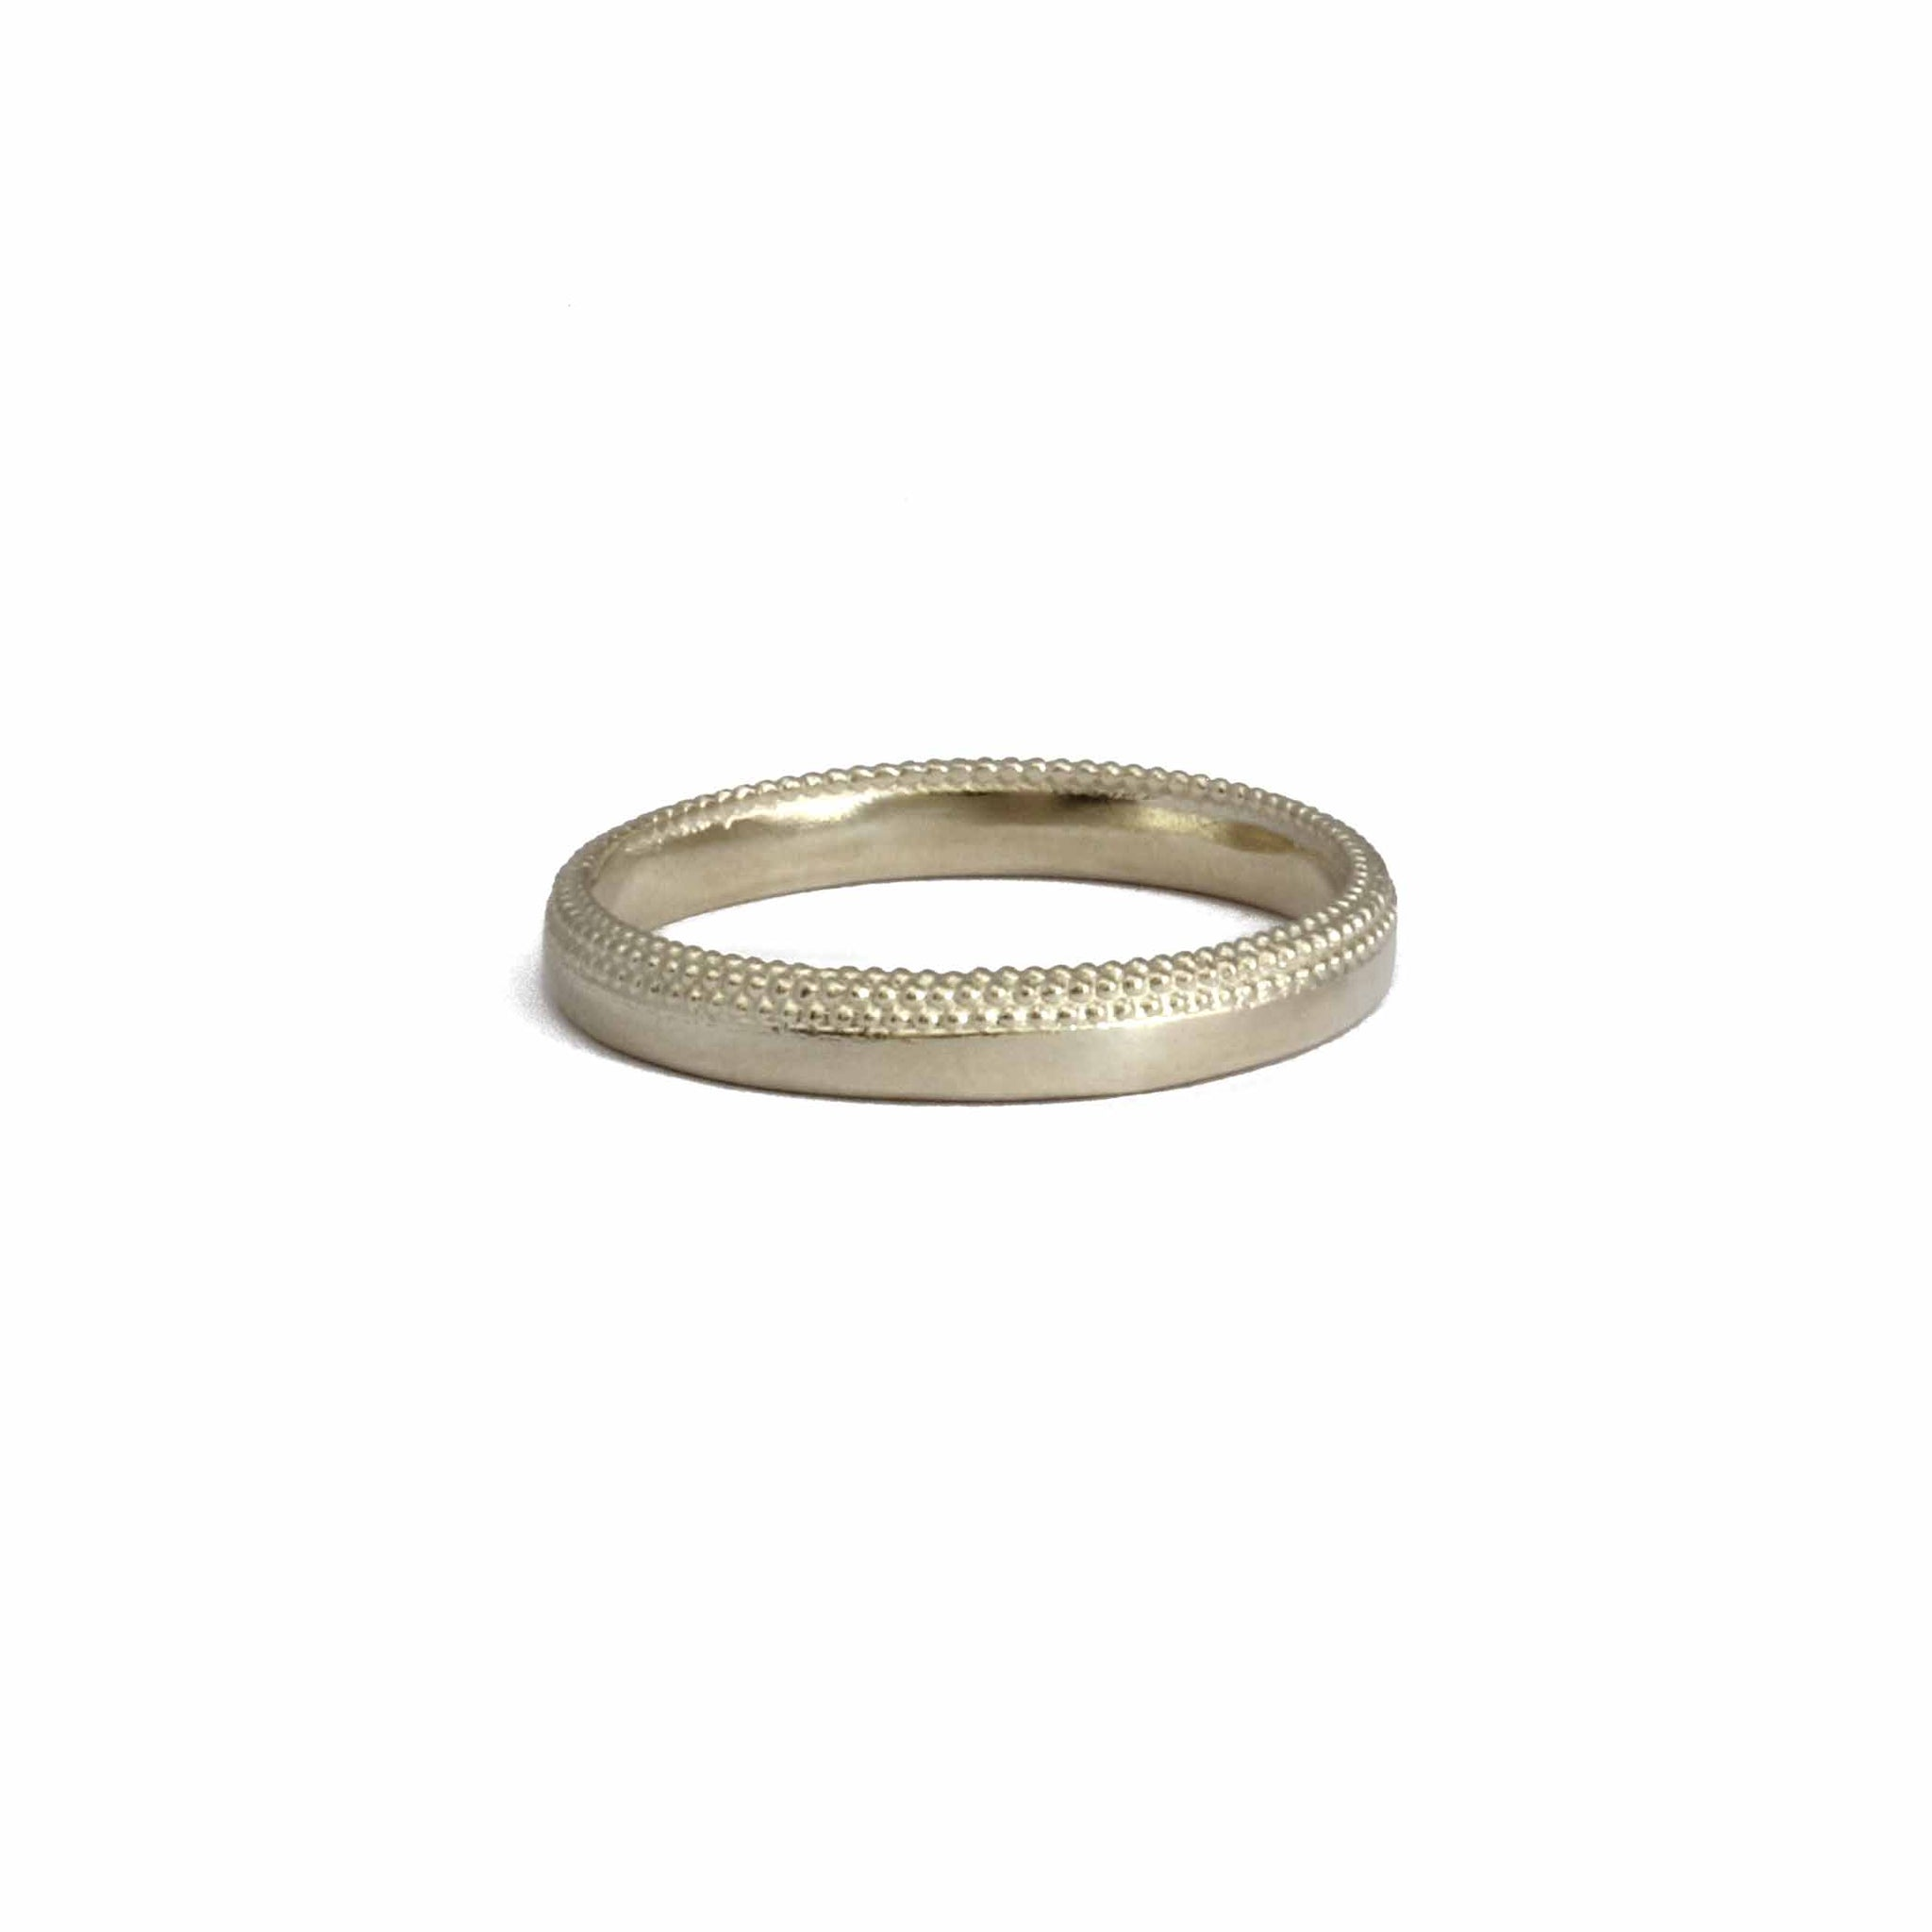 3mm Tyro Fade Band 9ct gold